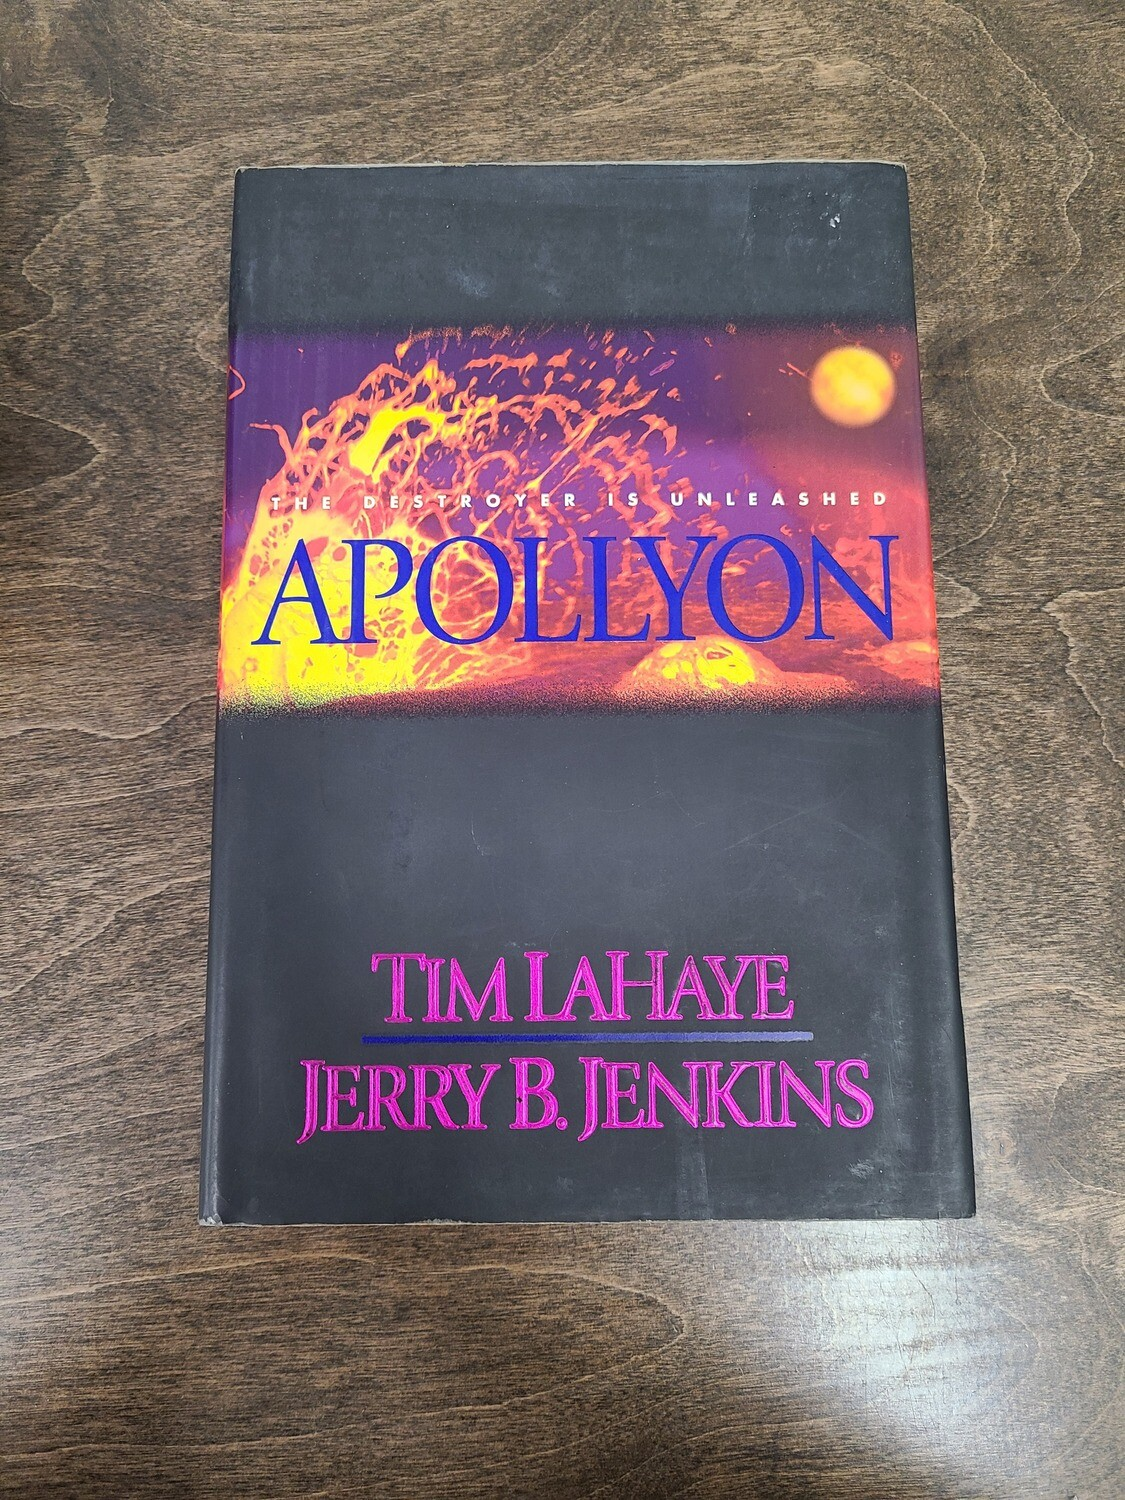 Apollyon: The Destroyer is Unleashed by Tim LaHaye and Jerry B. Jenkins - Hardback